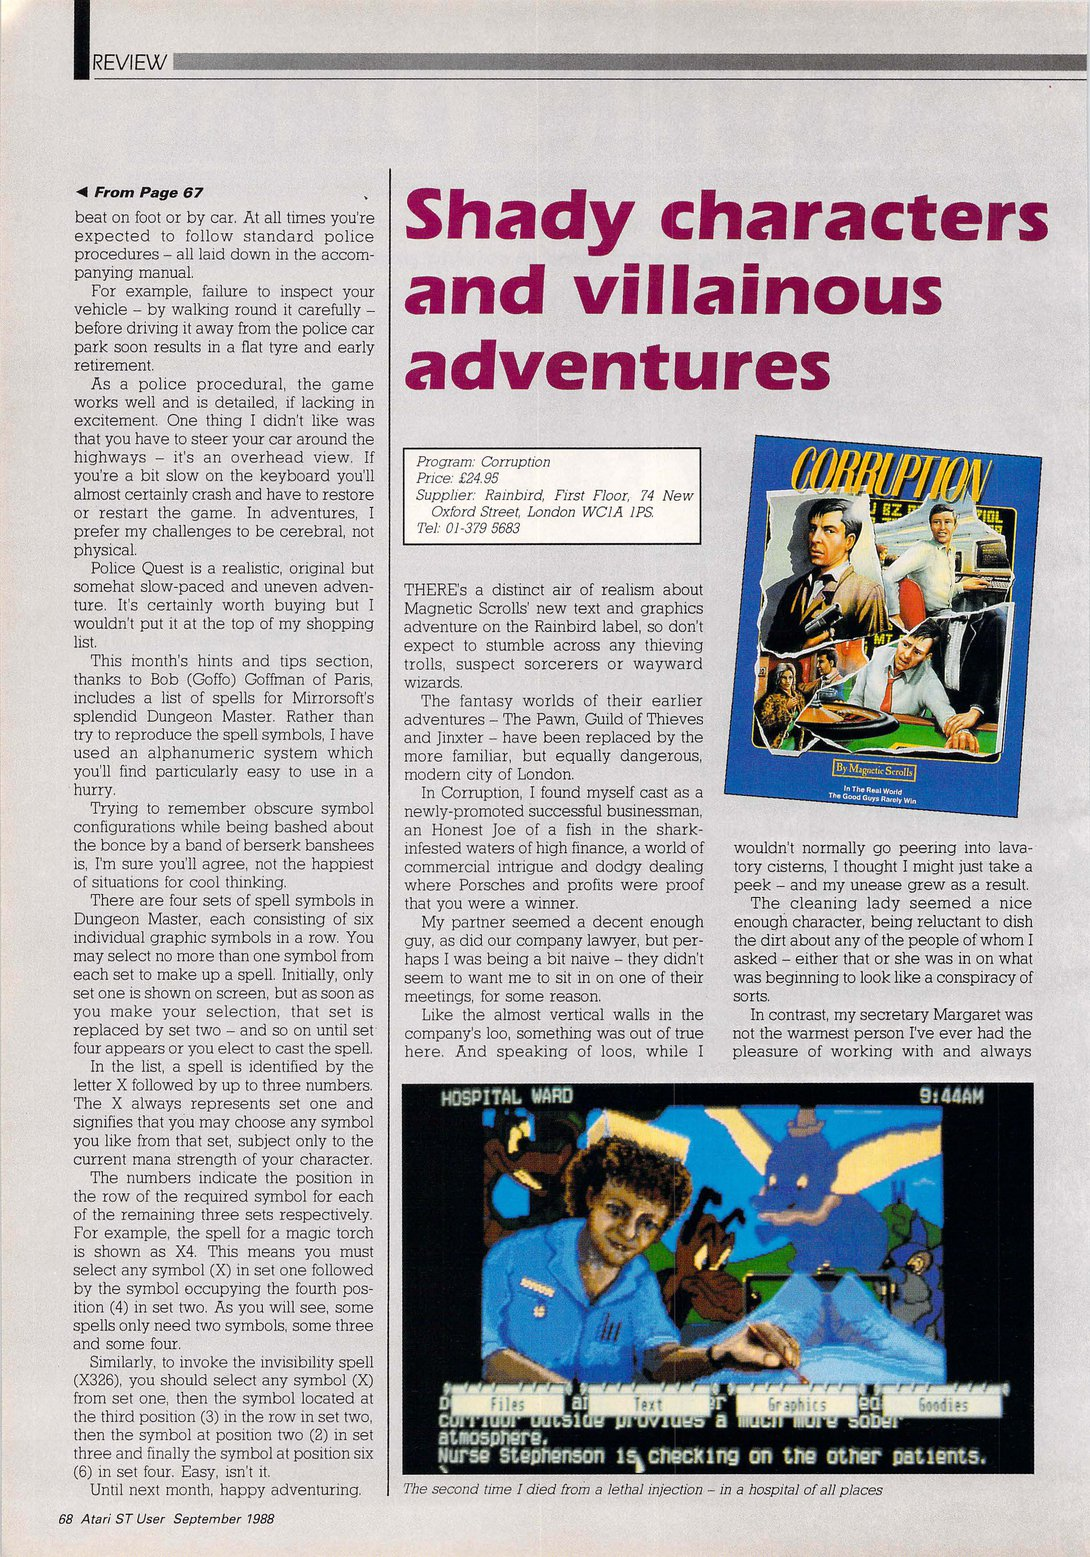 Dungeon Master Hints published in British magazine 'Atari ST User', Vol 3 No 7 September 1988, Page 68